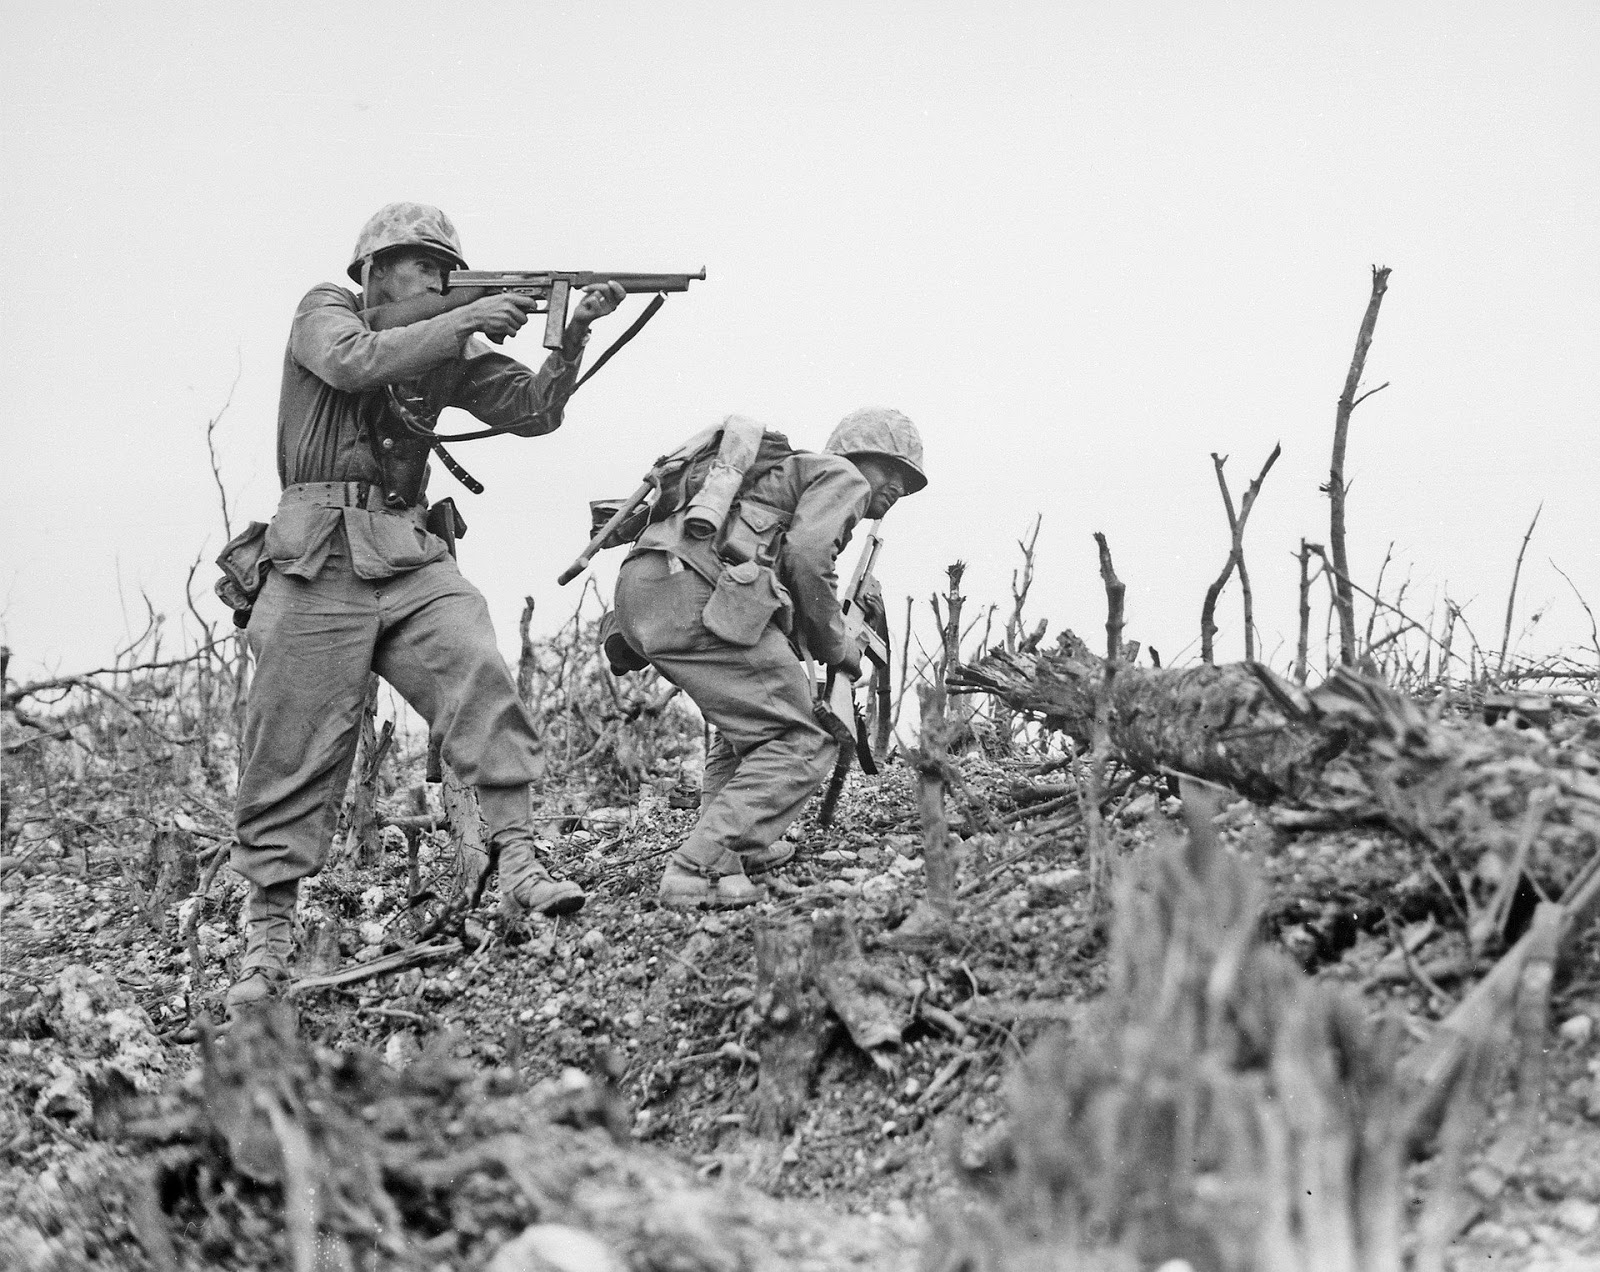 2 world war 2 soldiers cross empty field and shooting guns for blog post about movie the dirty dozen